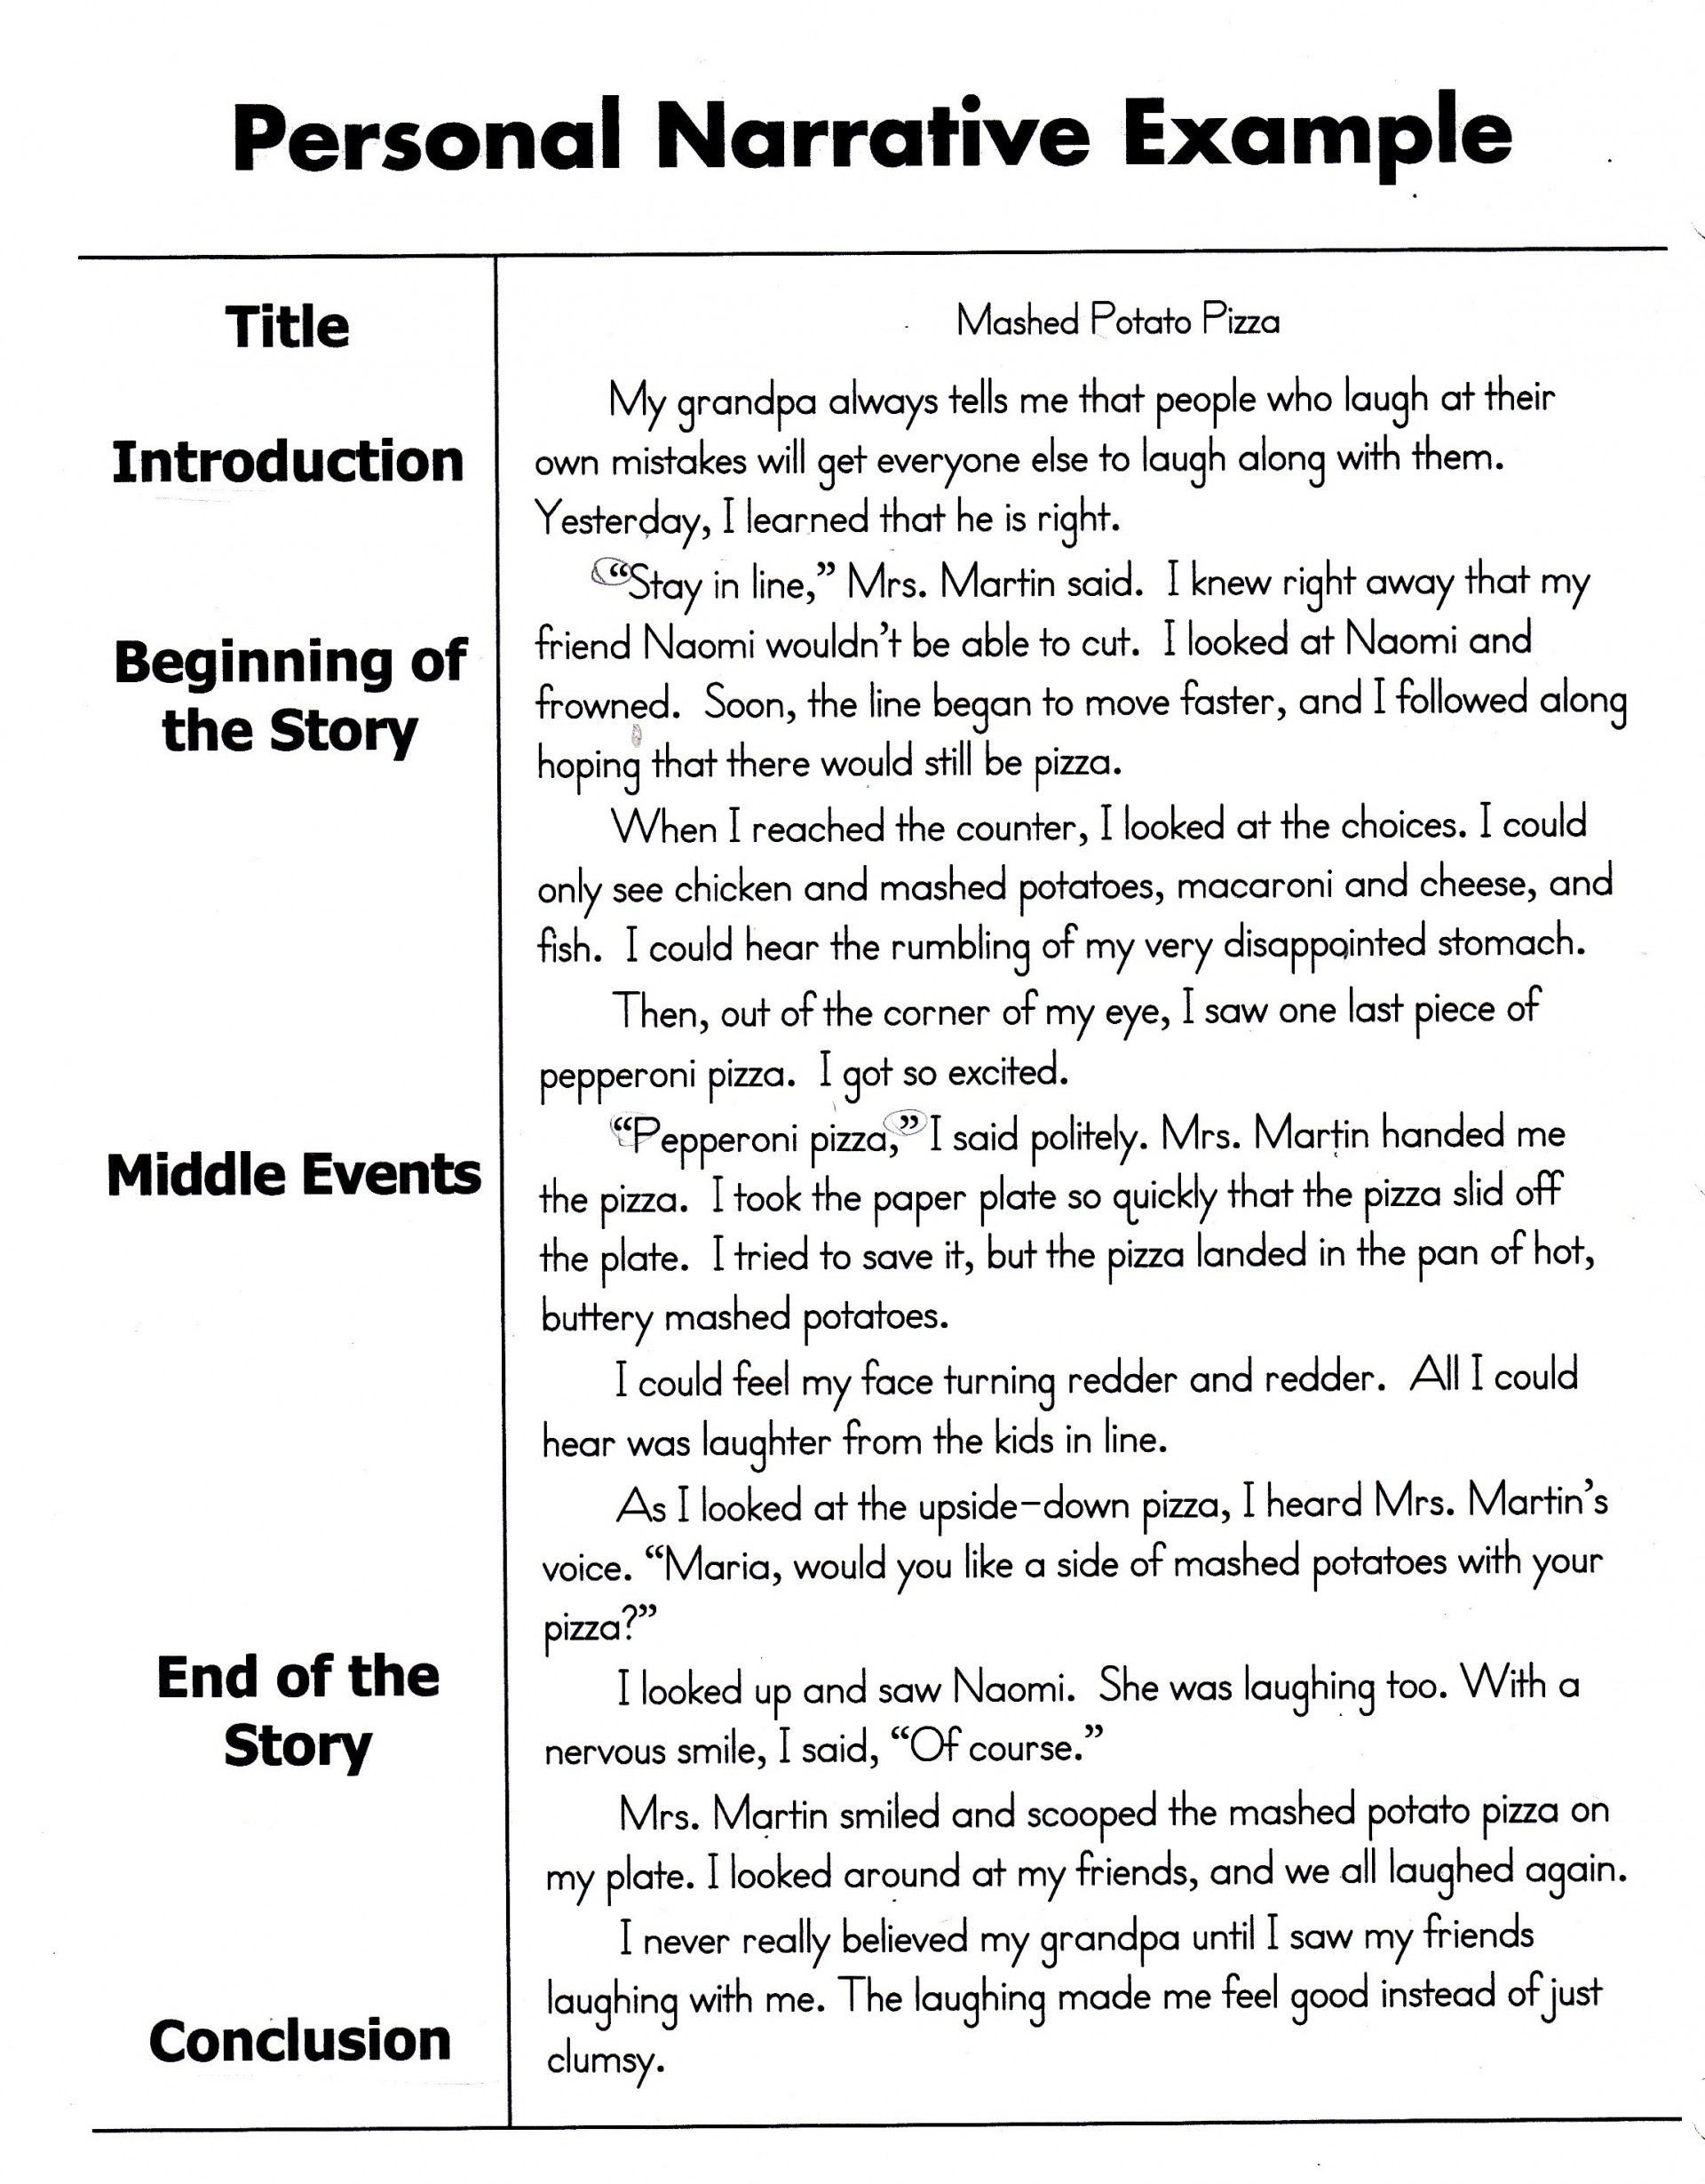 006 Narrative Essay Format Example Unique Personal Examples For Middle School High Pdf 1920